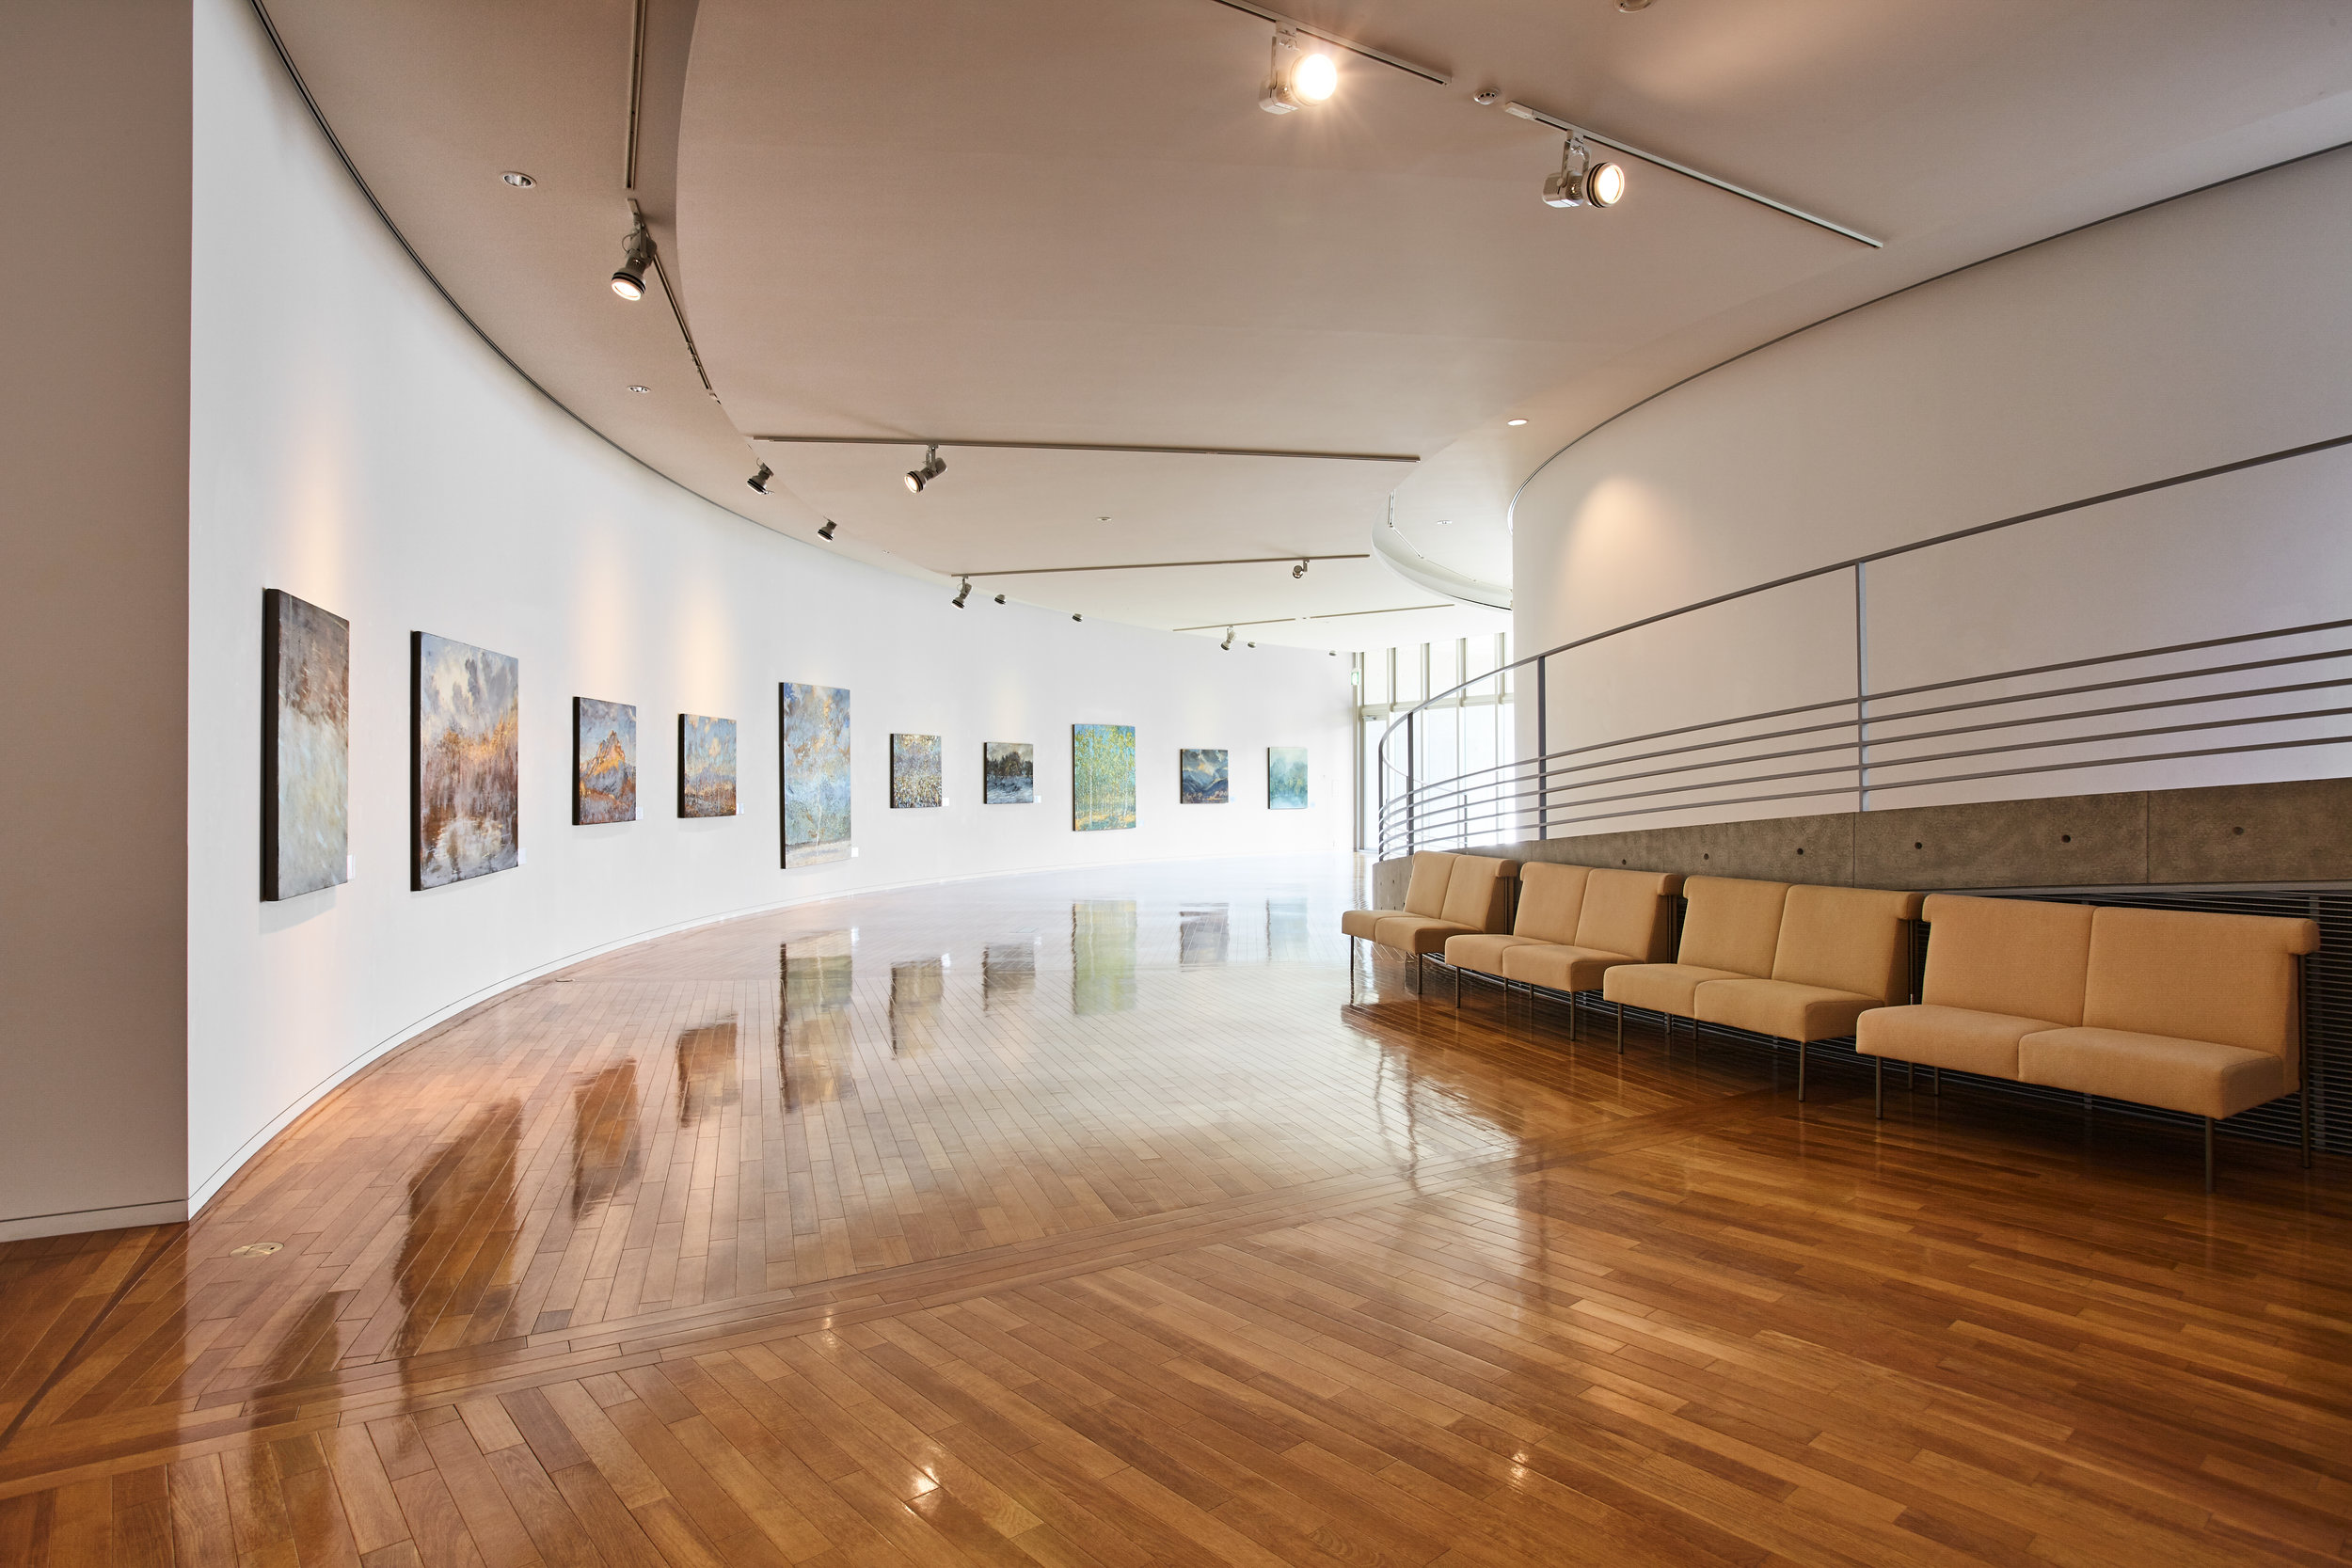 After entering the museum, the first gallery of oil paintings